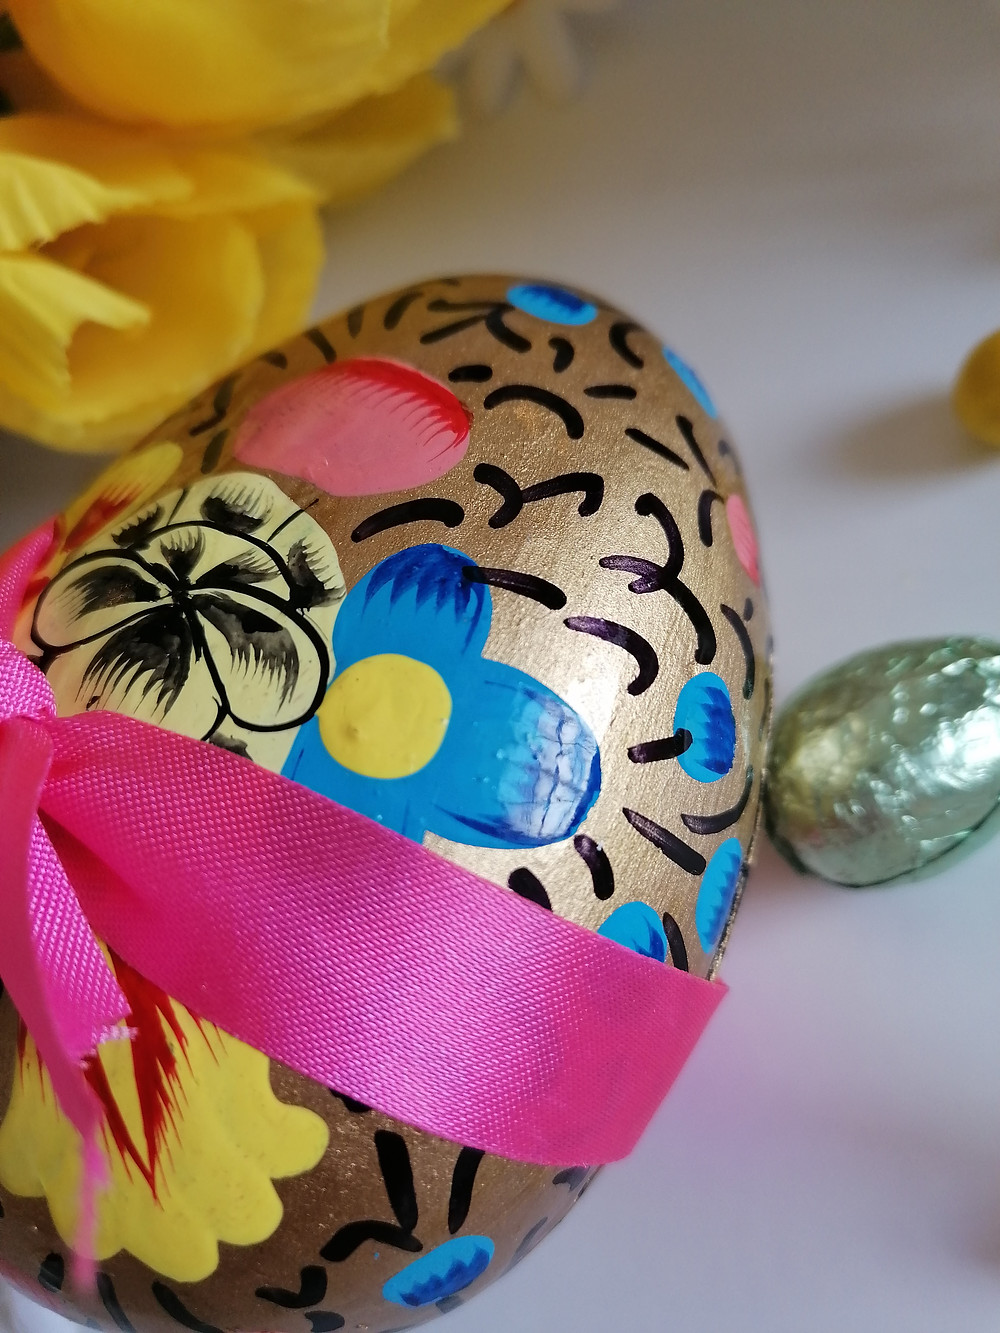 Hand painted Booja Booja Easter Egg Shell containing truffles wrapped in a pink bow